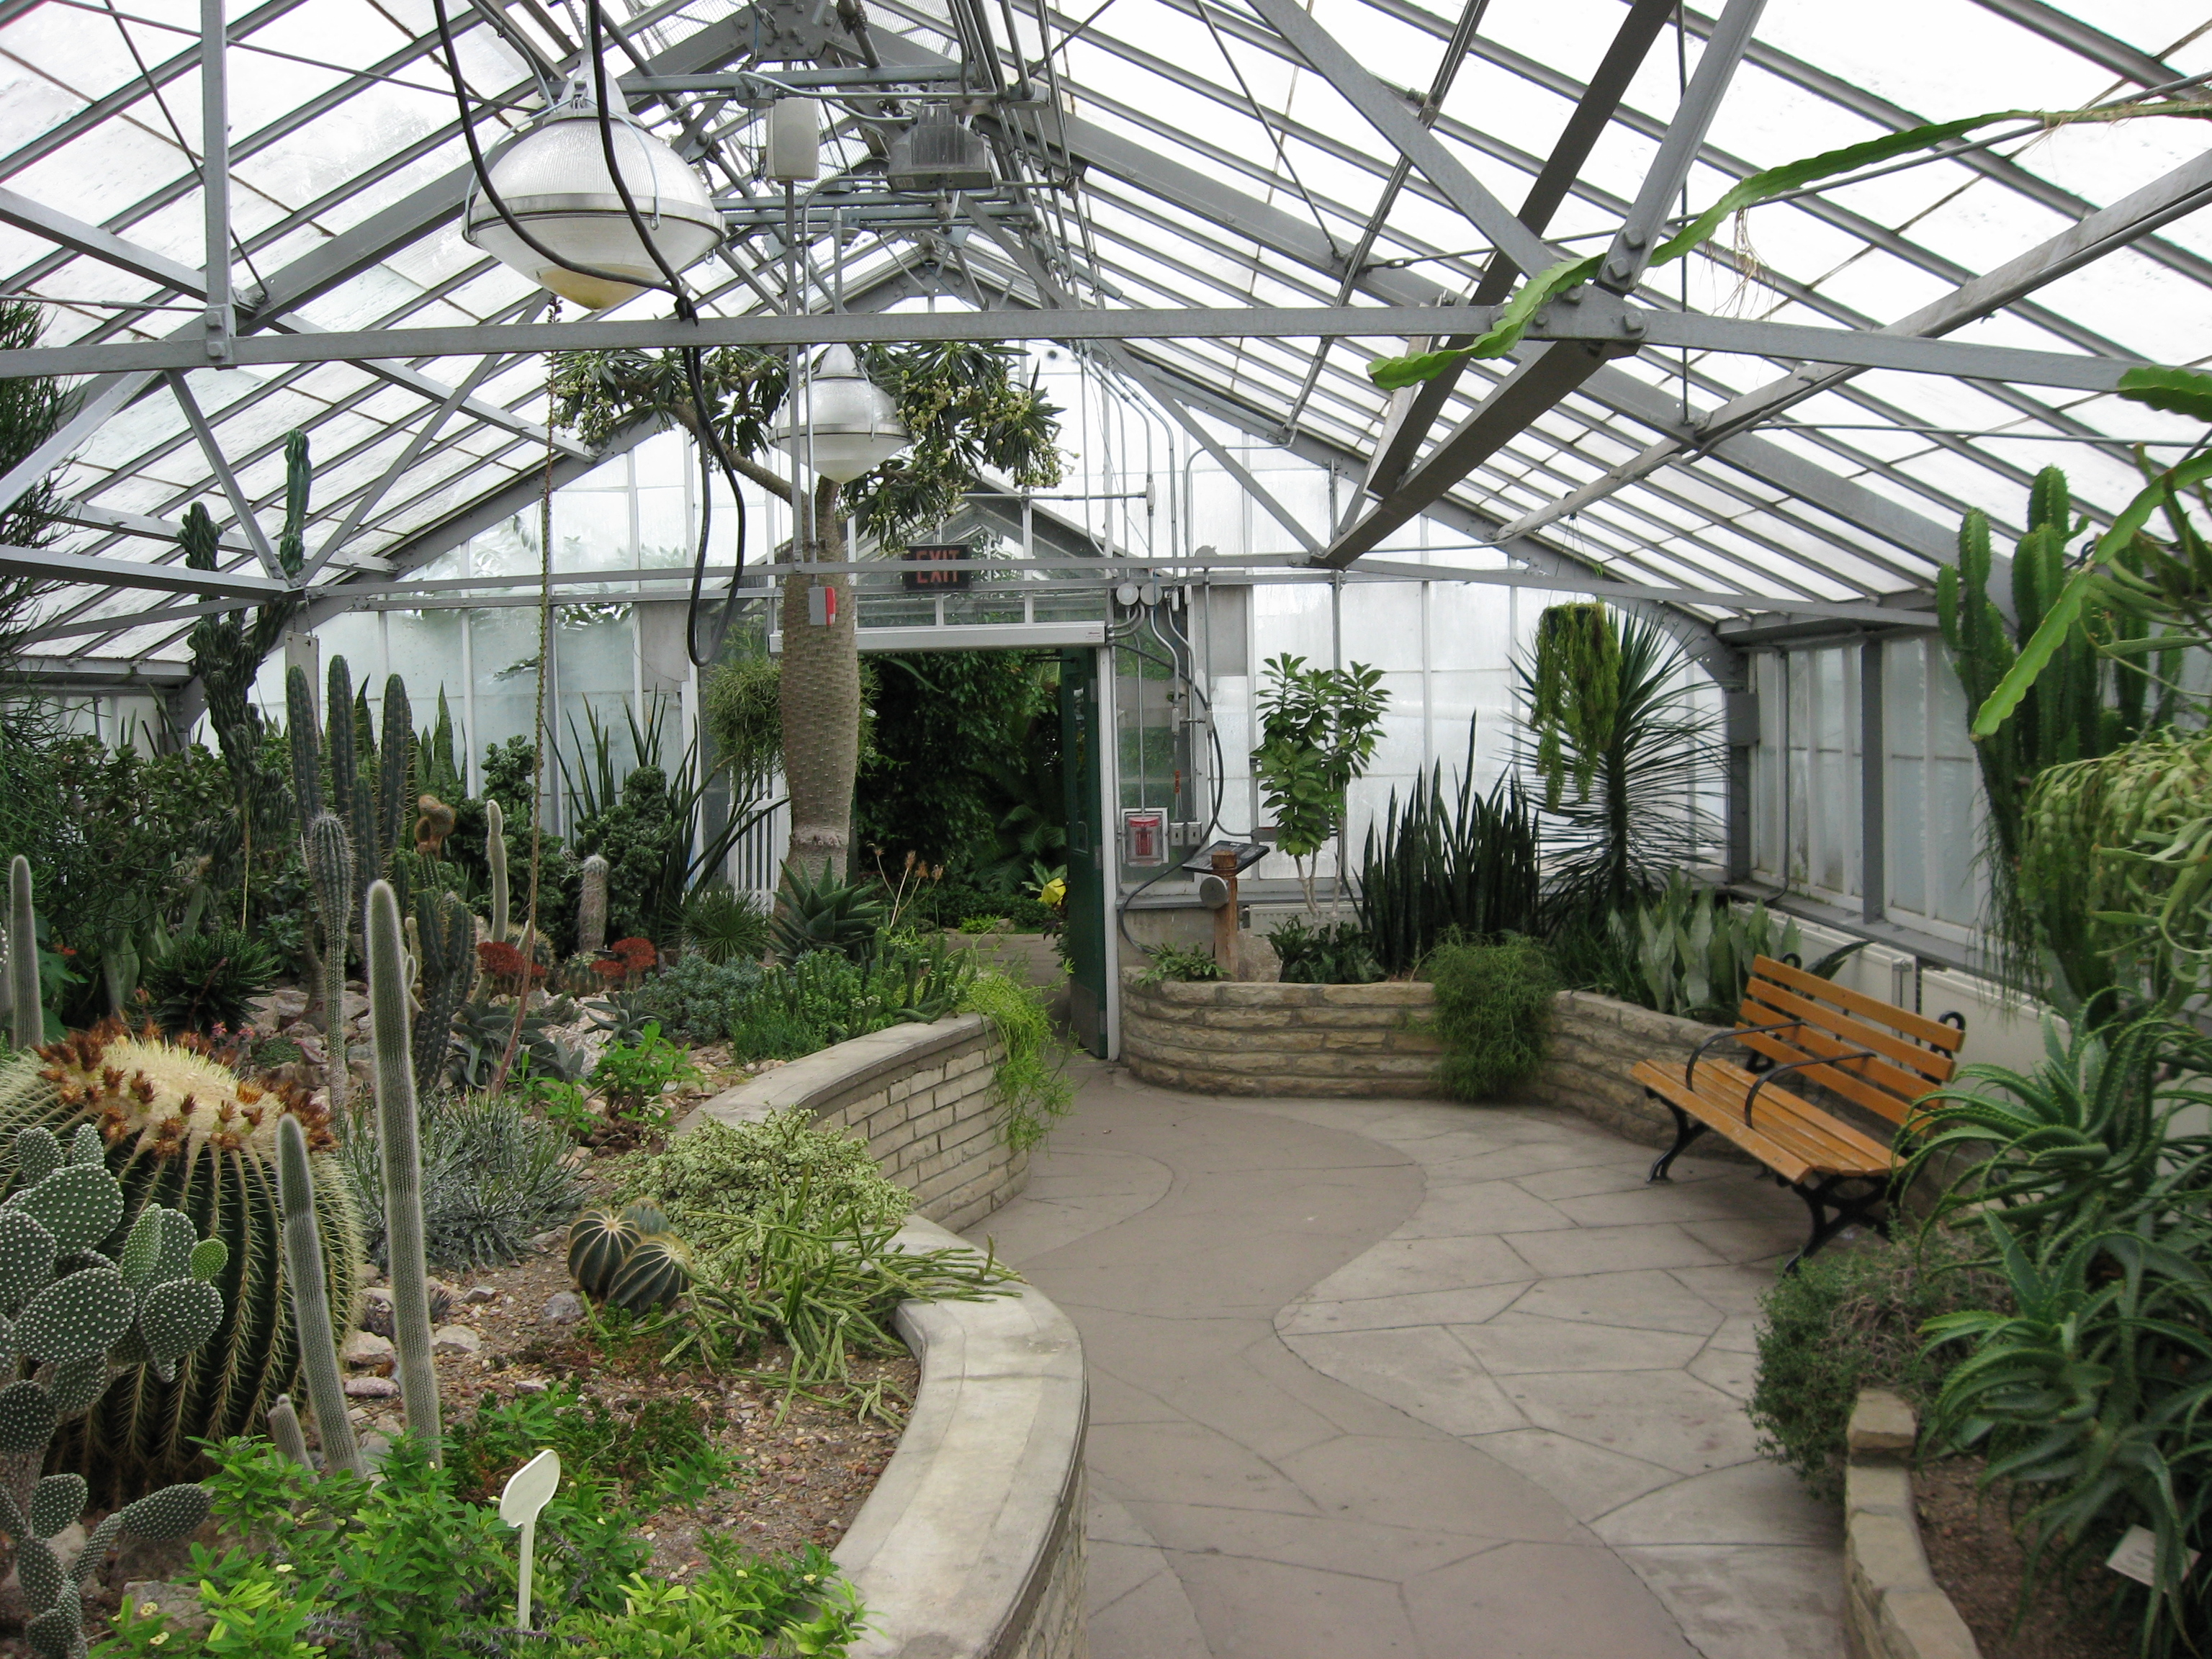 file allan gardens cactus wikimedia commons. Black Bedroom Furniture Sets. Home Design Ideas